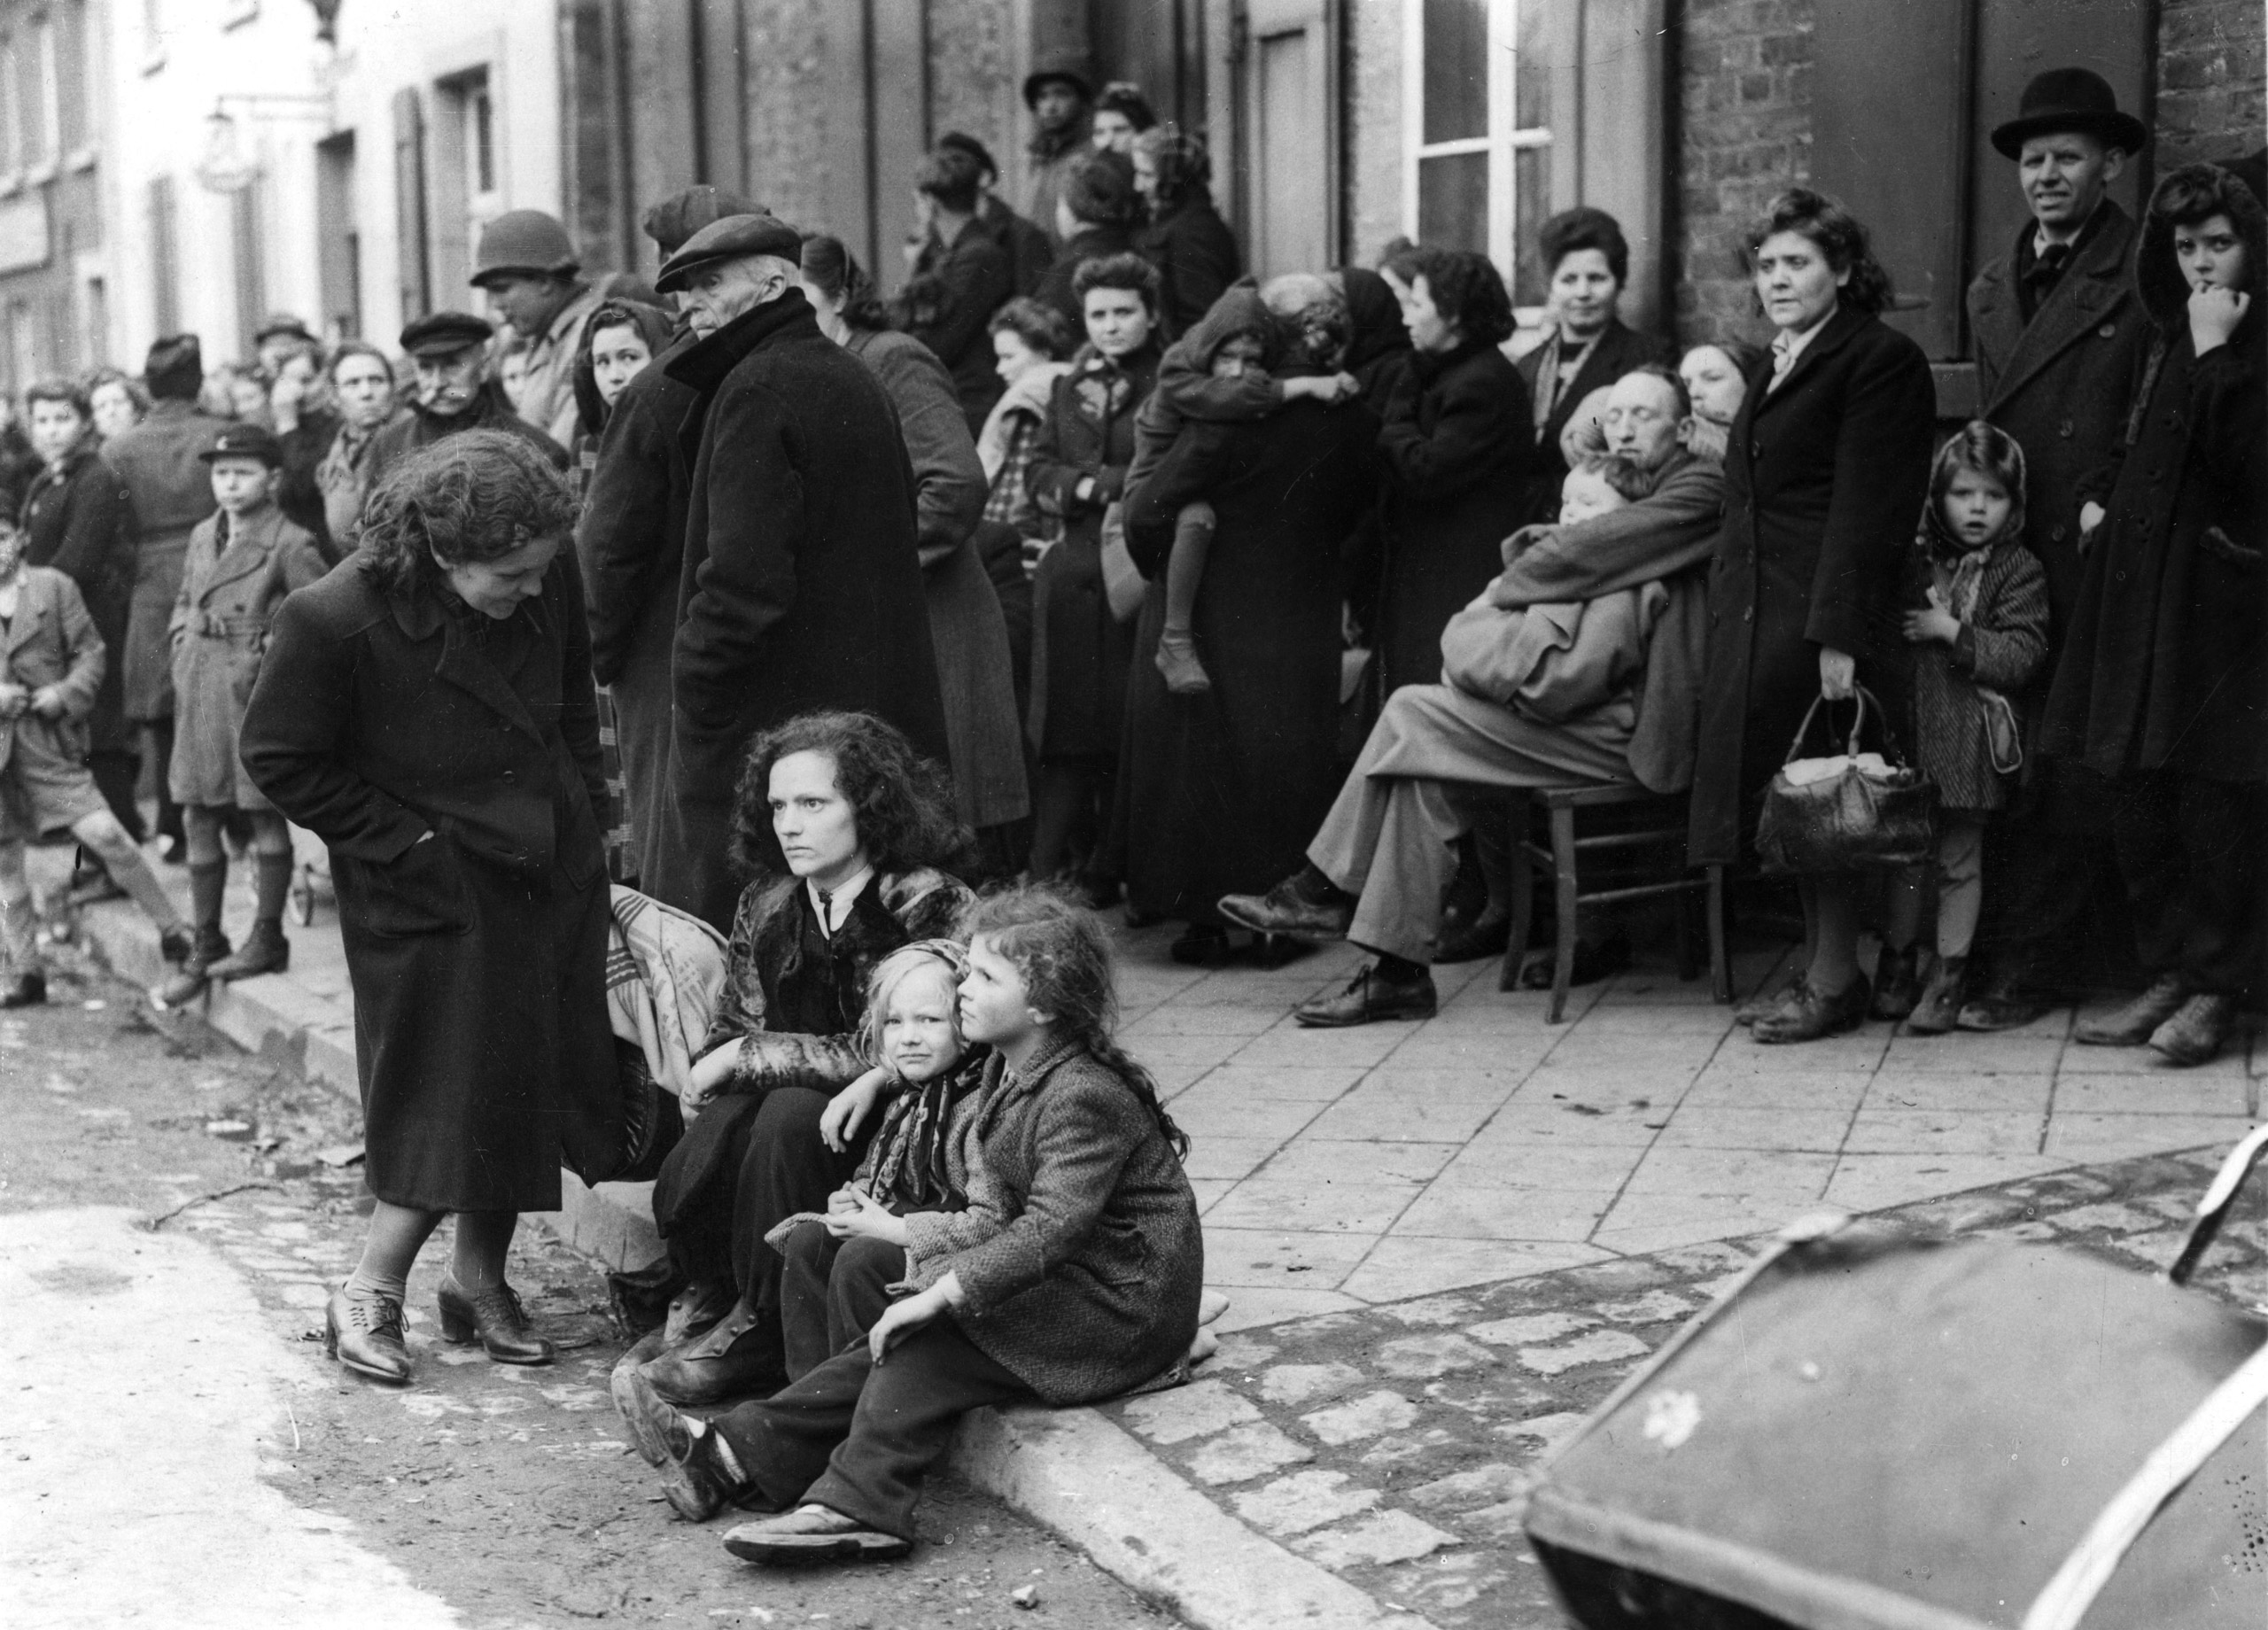 German refugees crowding the market square on Mar. 3, 1945, at Juchen, Germany, a town captured by the U.S. Army at the end of the Second World War.